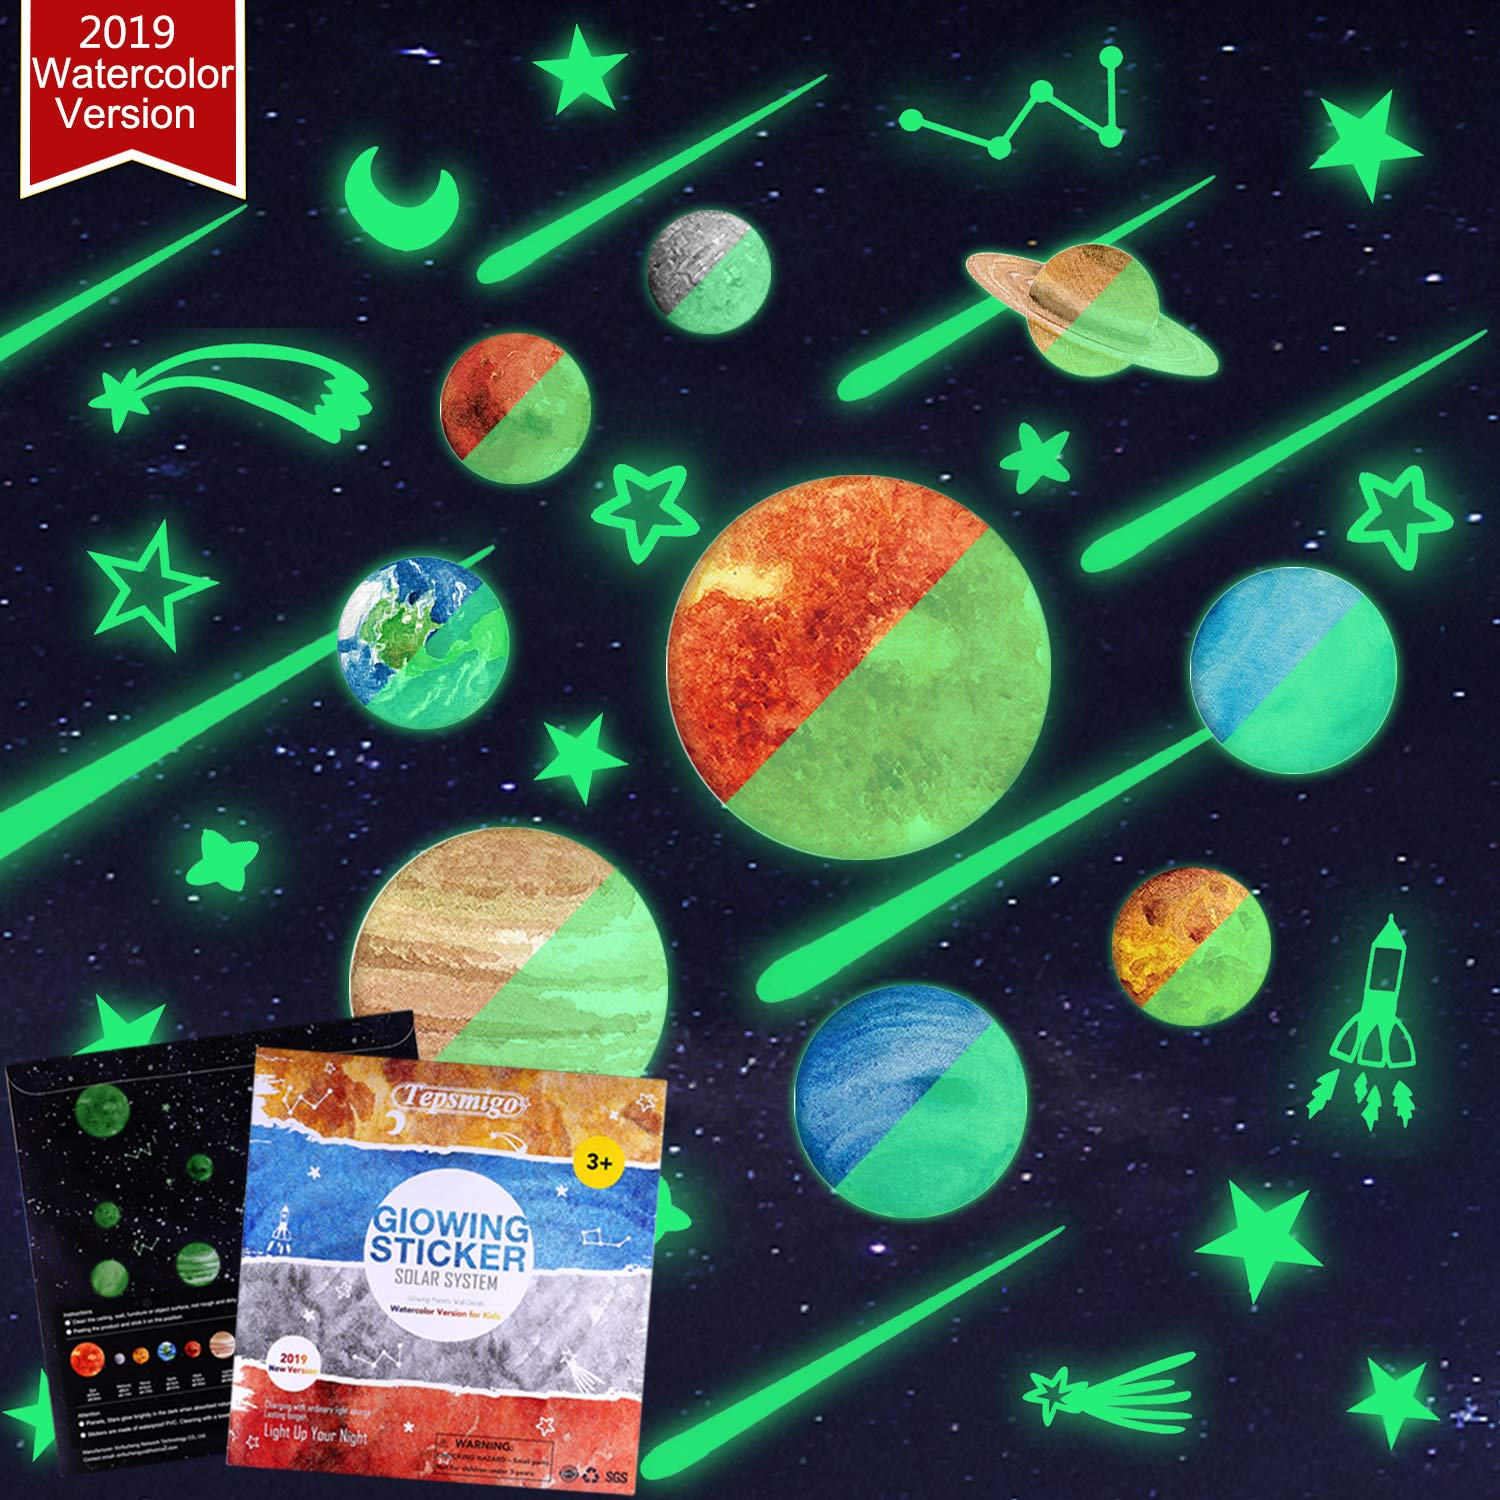 TEPSMIGO 68pcs Glow in The Dark Stars and Planets Wall Stickers, 9 Planets + 28 Stars + 12 Shooting Stars + 19 Constellation Symbols, Bright Solar System Wall Stickers Glowing Ceiling Decals for Kids